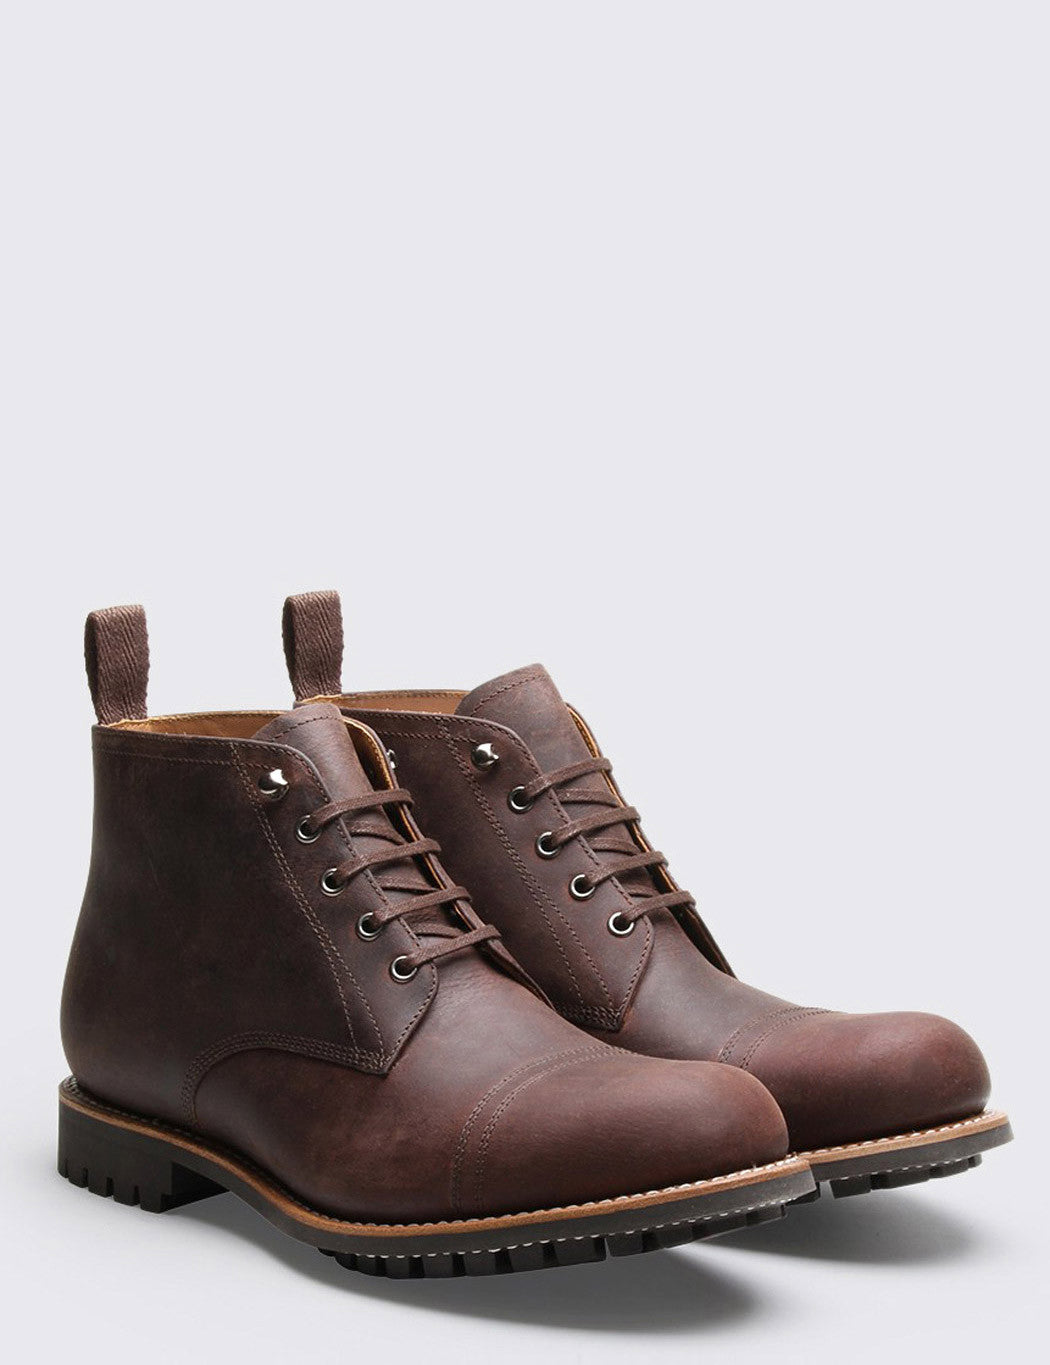 Grenson Ryan Buffalo Hide Boot - Walnut Brown